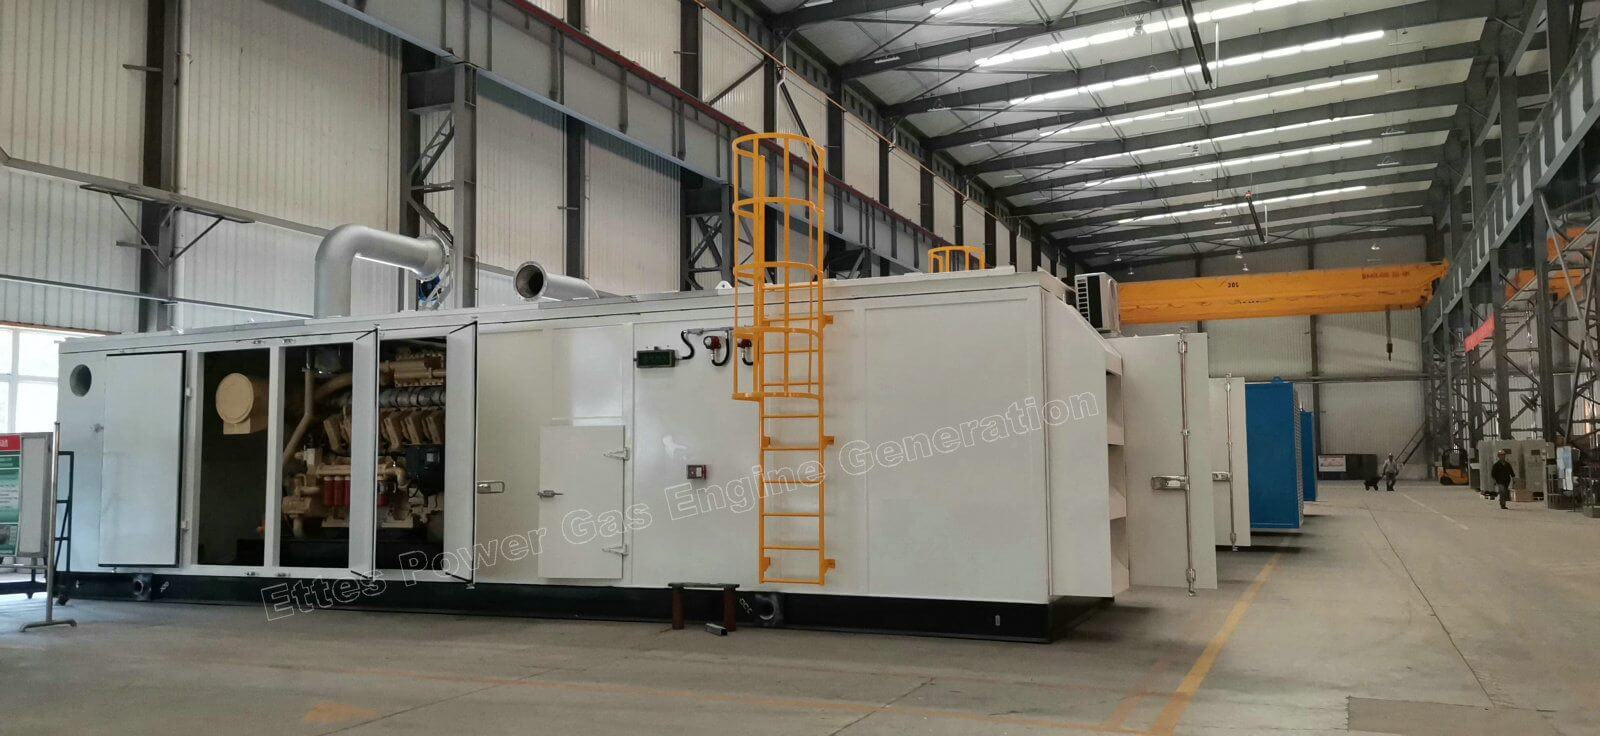 Ettespower MWM 1000kw 1000kva containerized natural gas generator set ETTES POWER